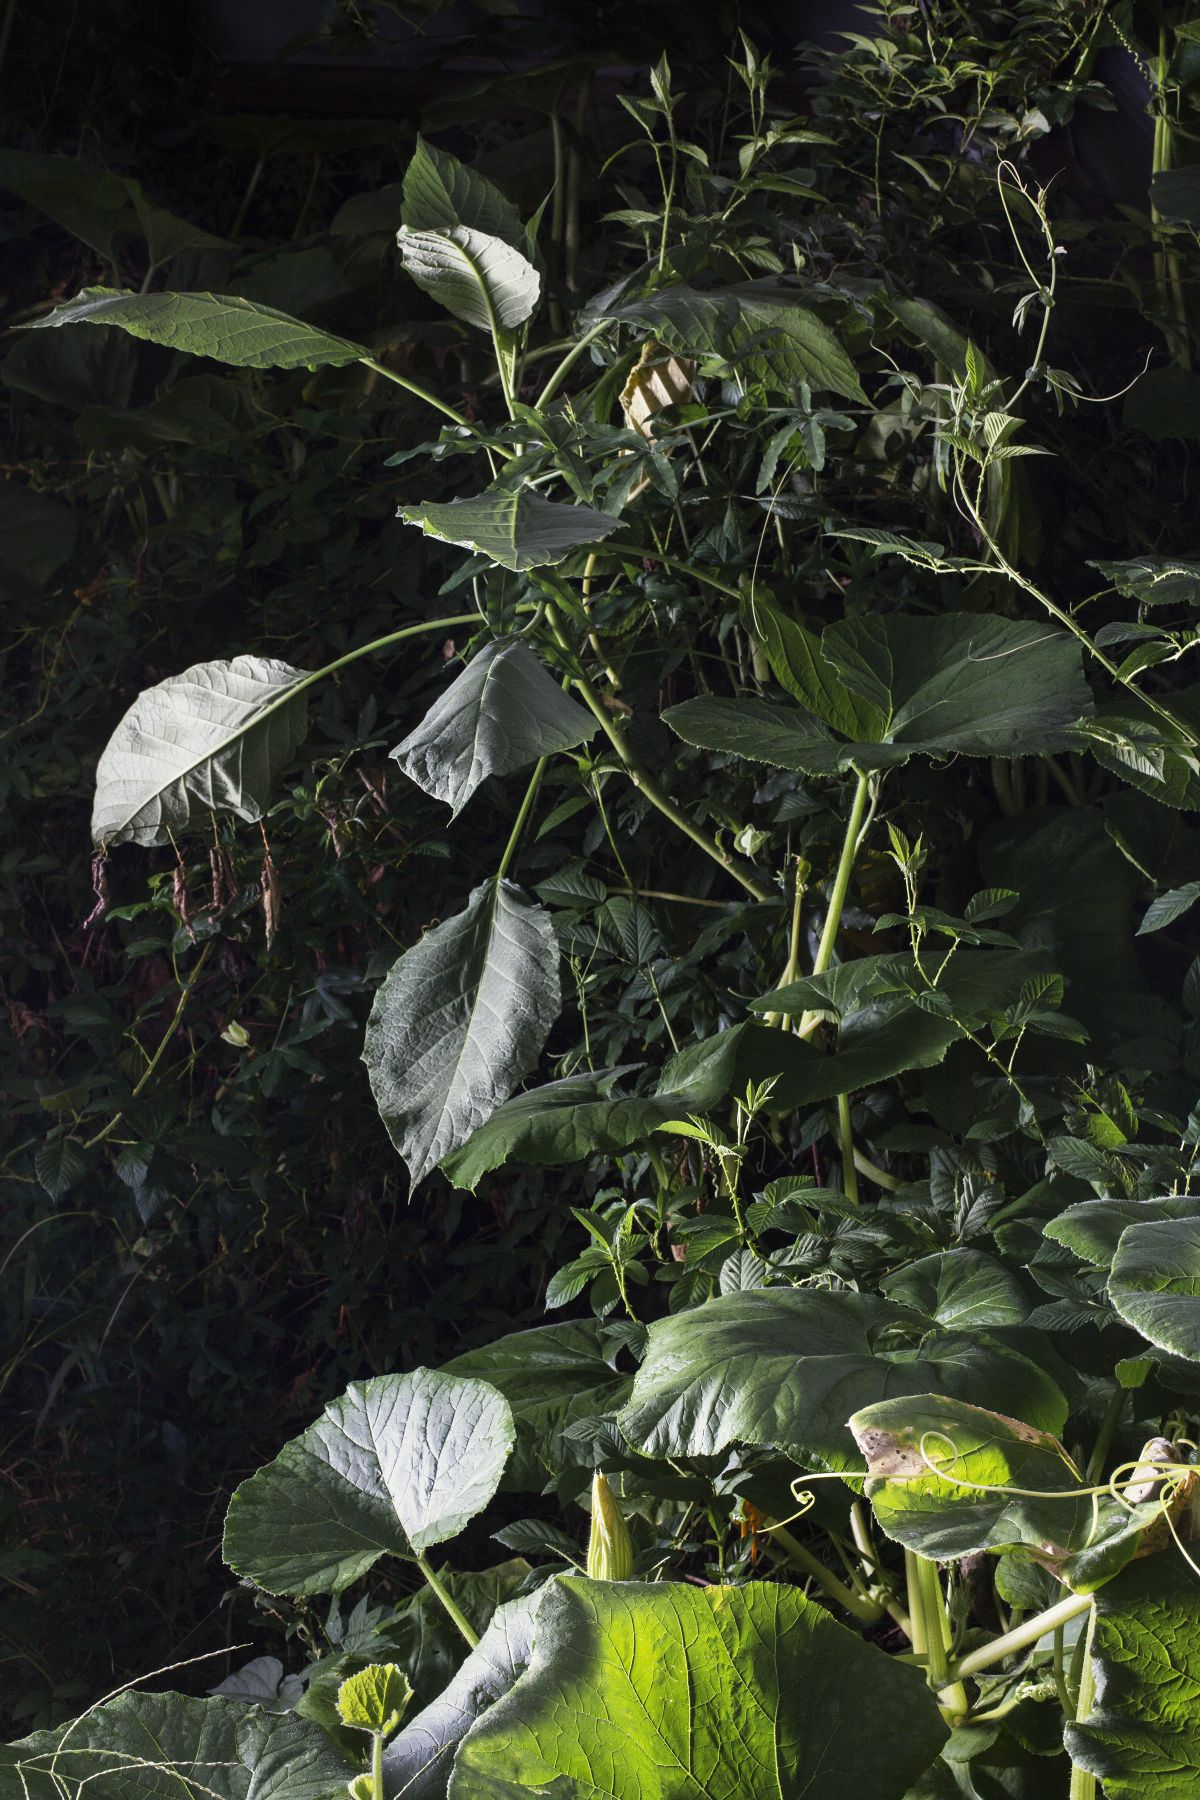 Photograph by Sharon Core from the series Understory of a close-up garden scene with leaves, flowers, and plants.